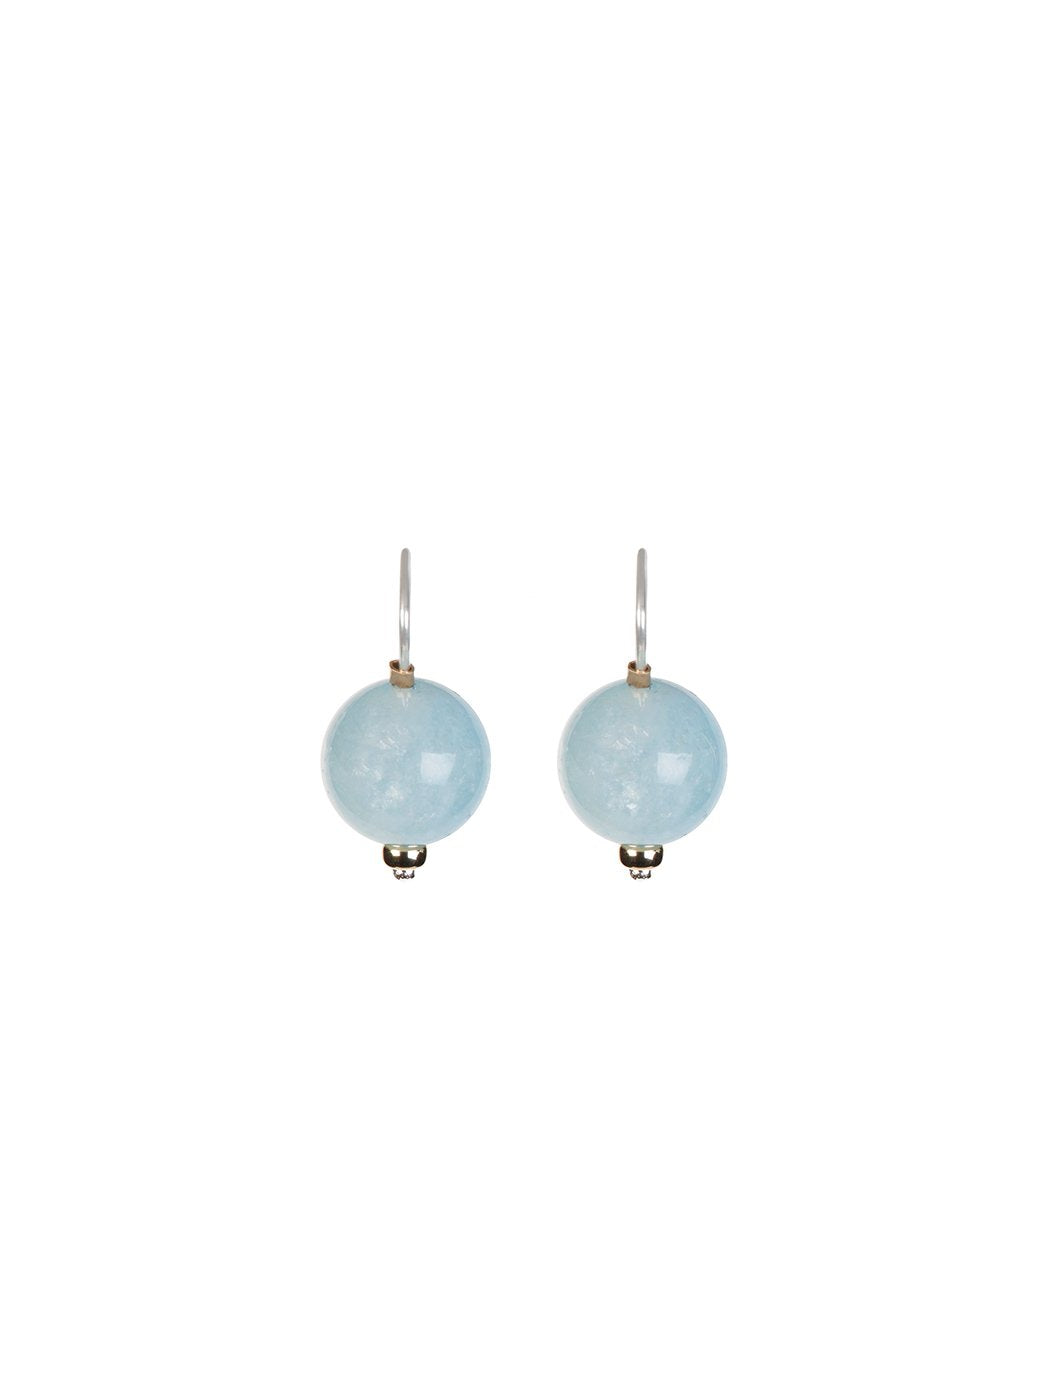 Ball Earrings - Aquamarine